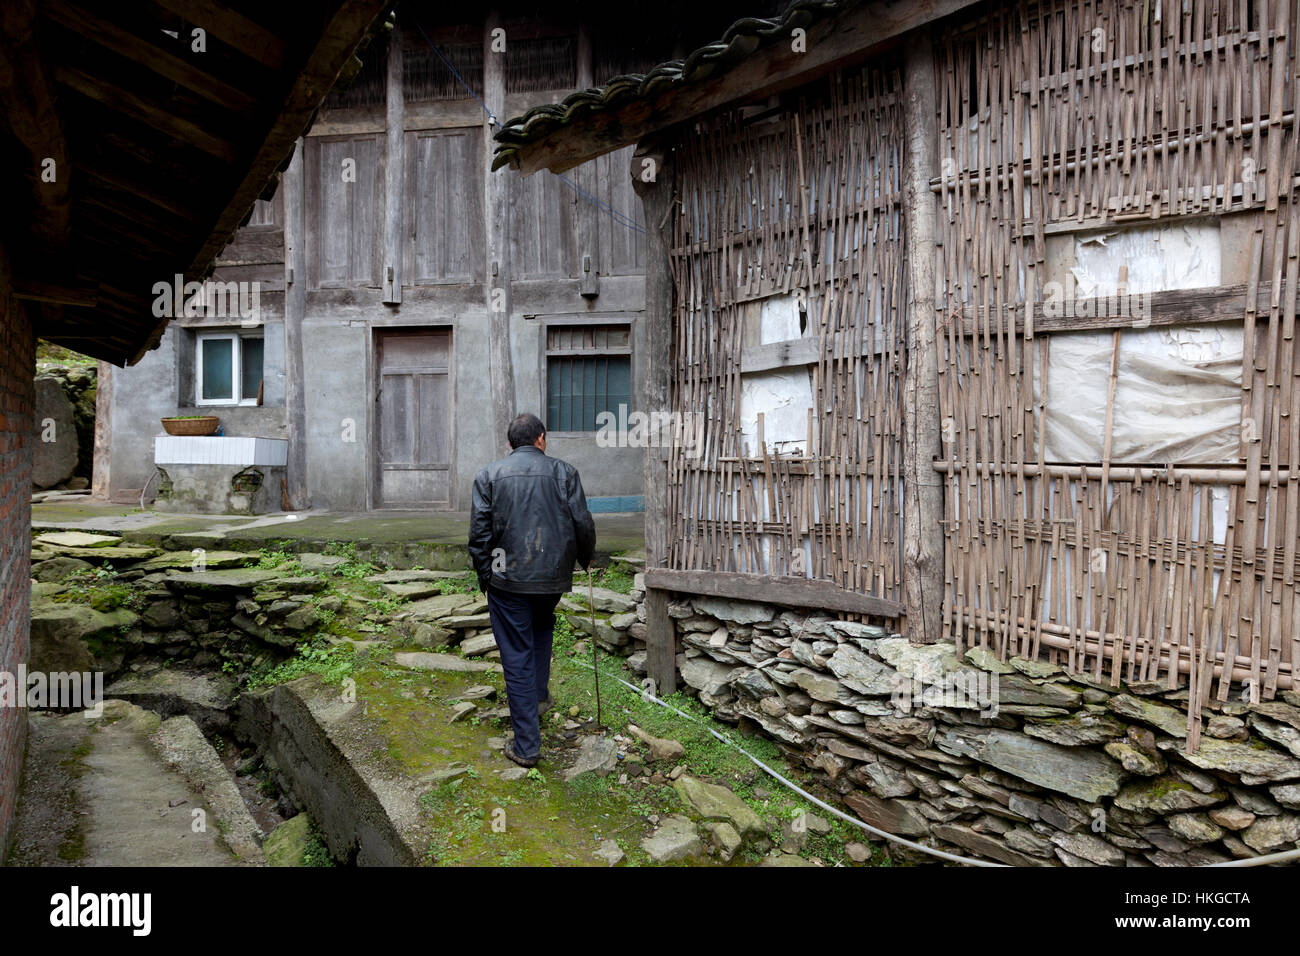 Farmhouses at a remote mountain village in the mountains of west China are variedly constructed of rubble stones, - Stock Image